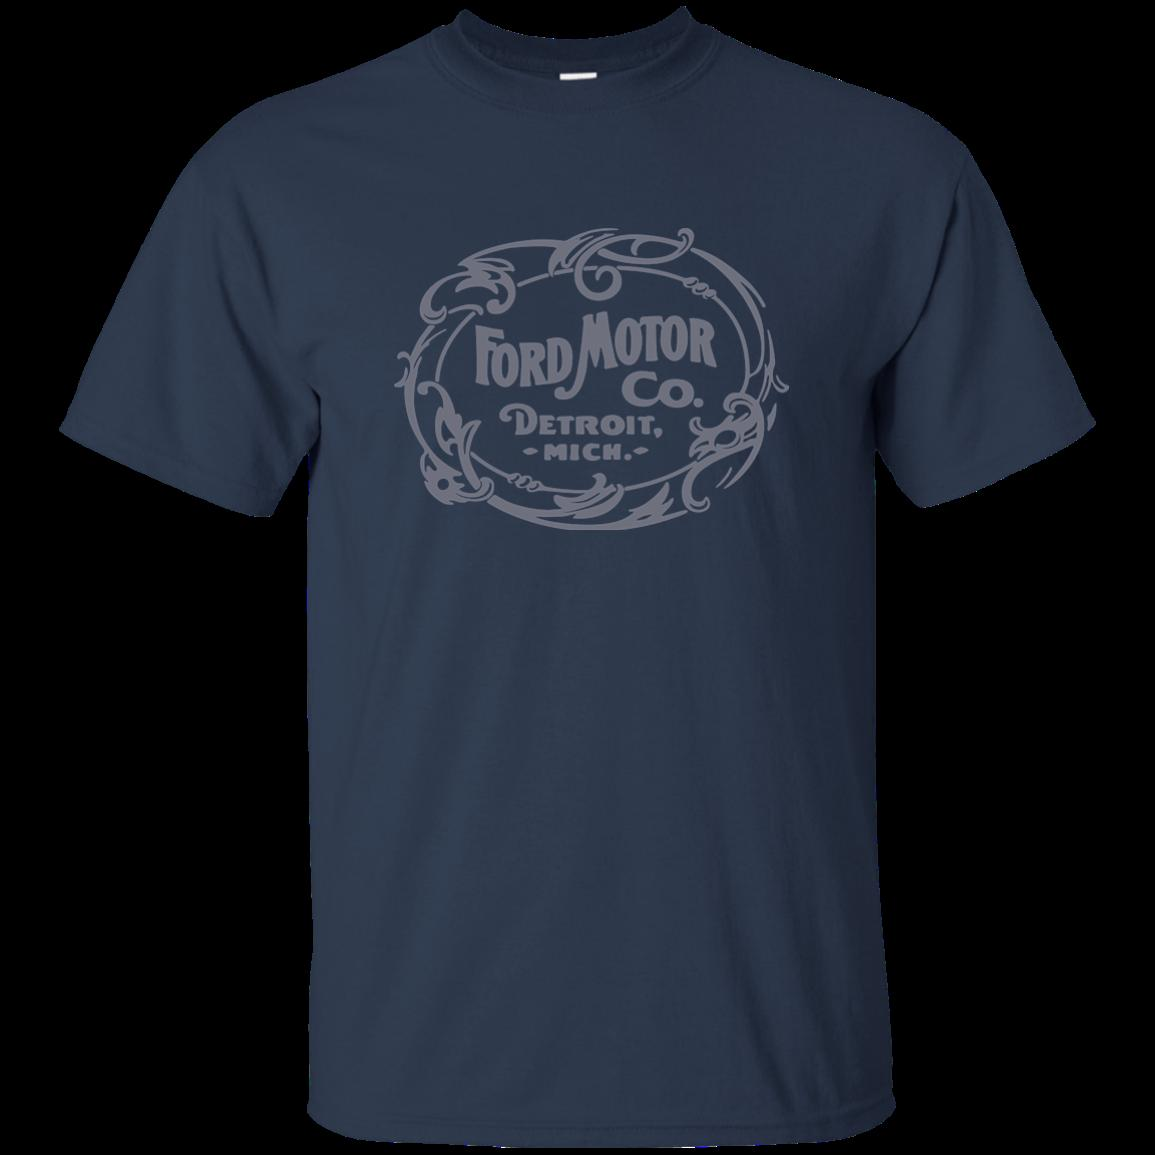 Graphic Cotton T Shirt Short /& Long Sleeve Ford Motor Company